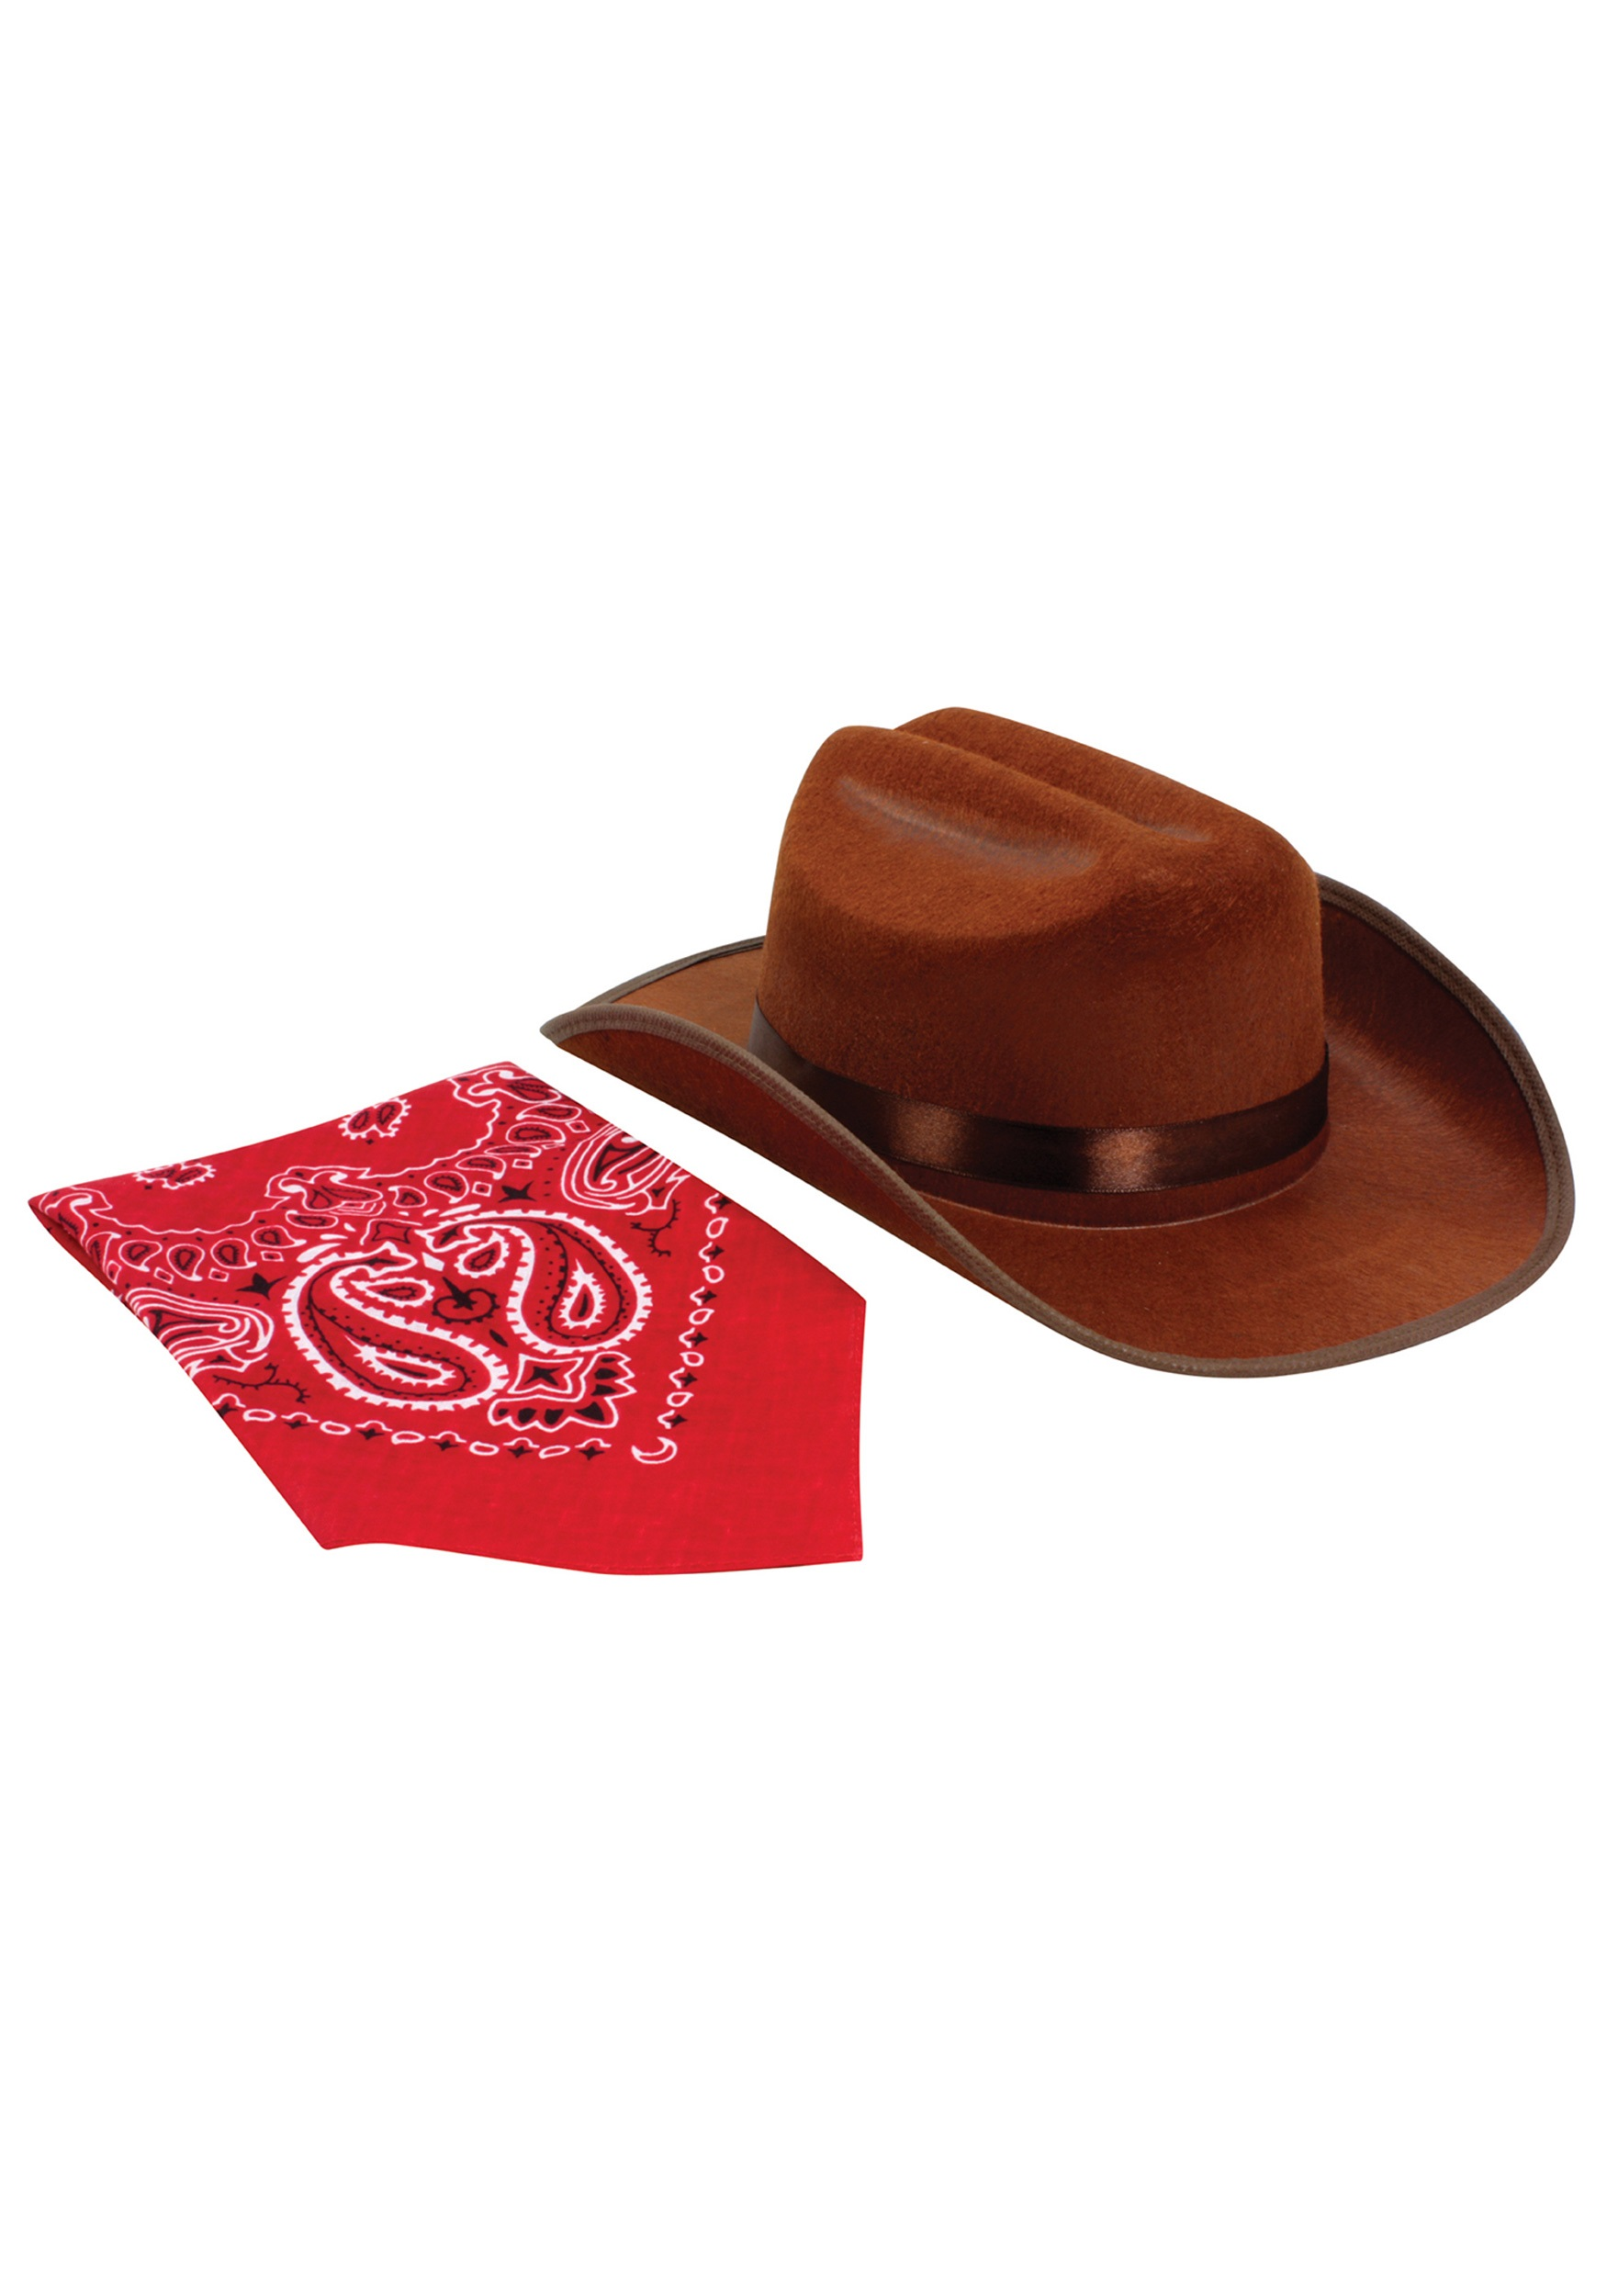 Brown Junior Cowboy Hat and Bandana Set 48cf6861a48